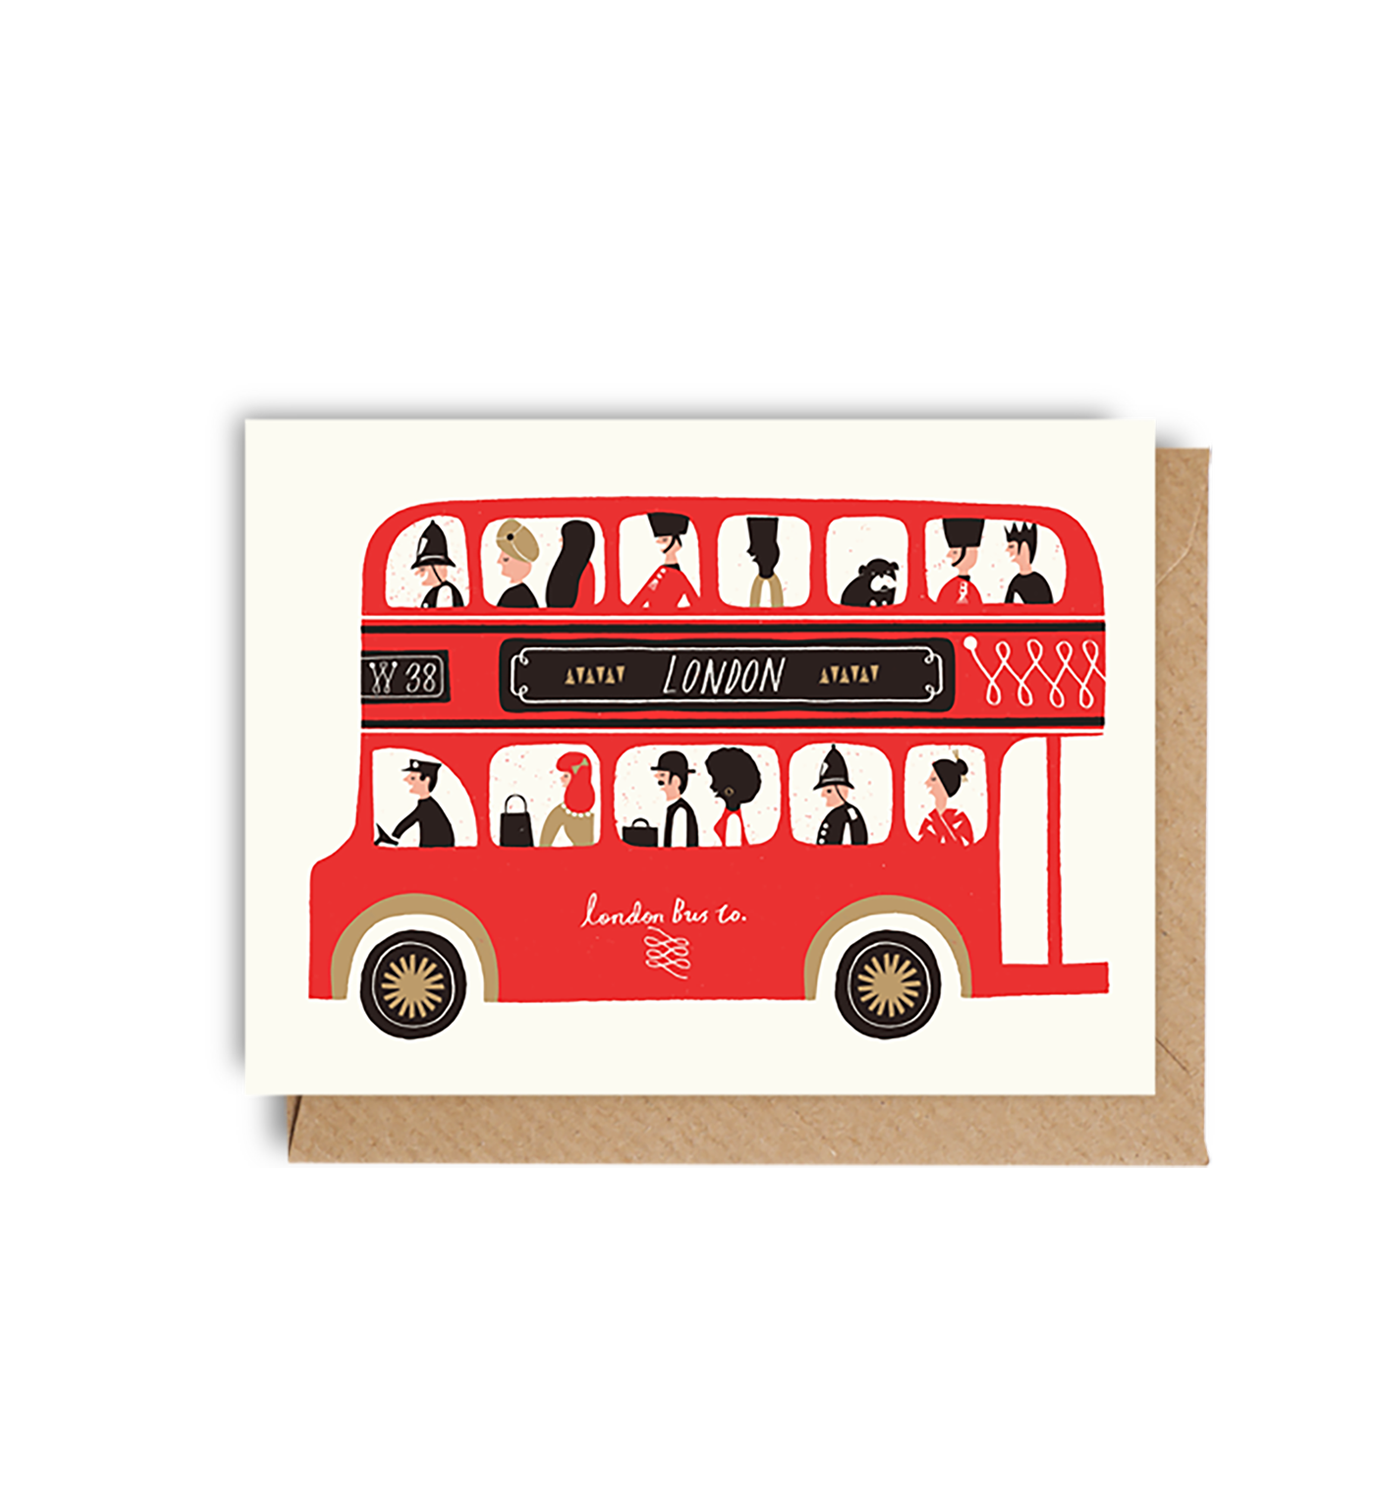 London buses double decker. Clipart bus rectangle